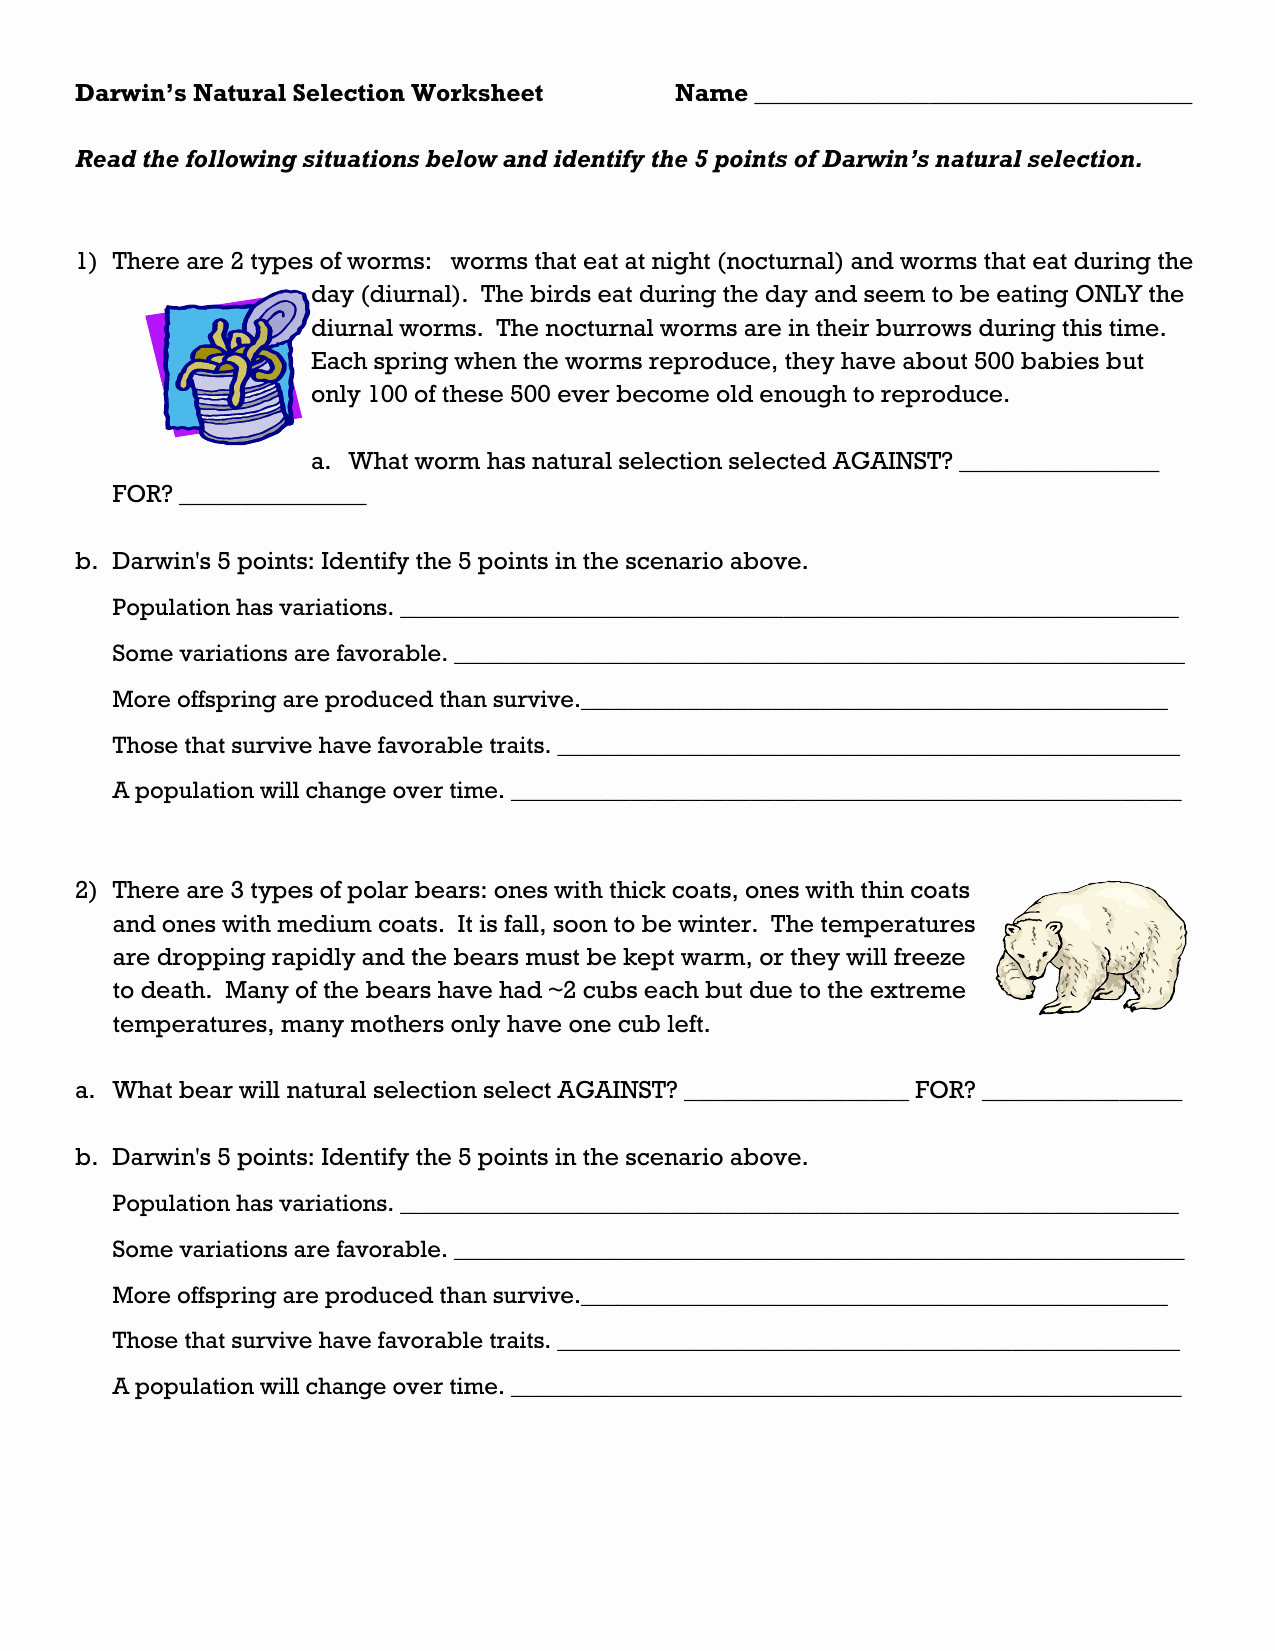 Darwin's Natural Selection Worksheet Answers Luxury Darwin S Natural Selection Worksheet School